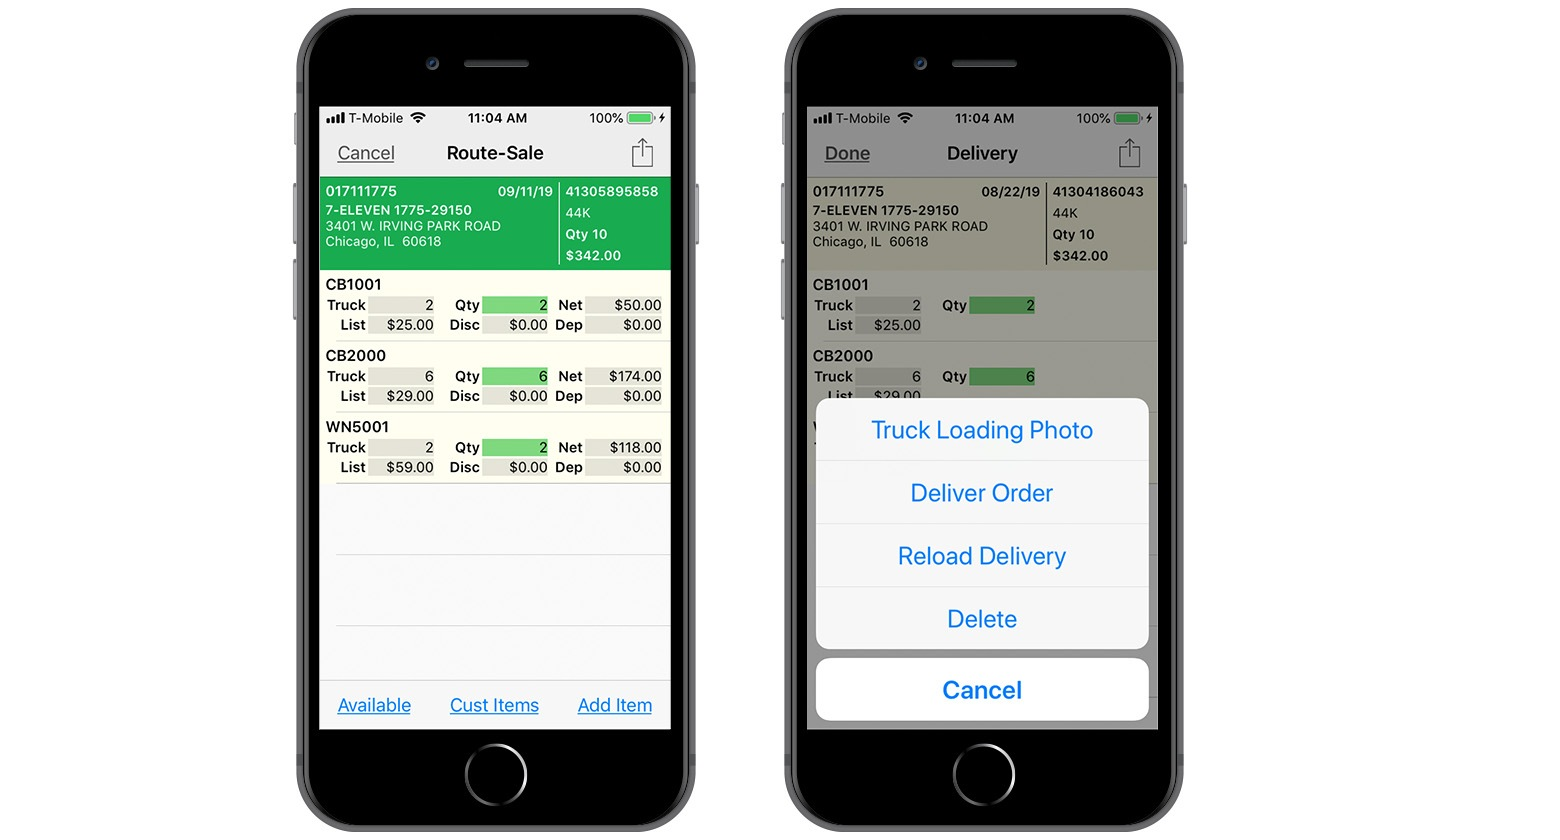 xkzero-mobile-commerce-route-sale-delivery-screens